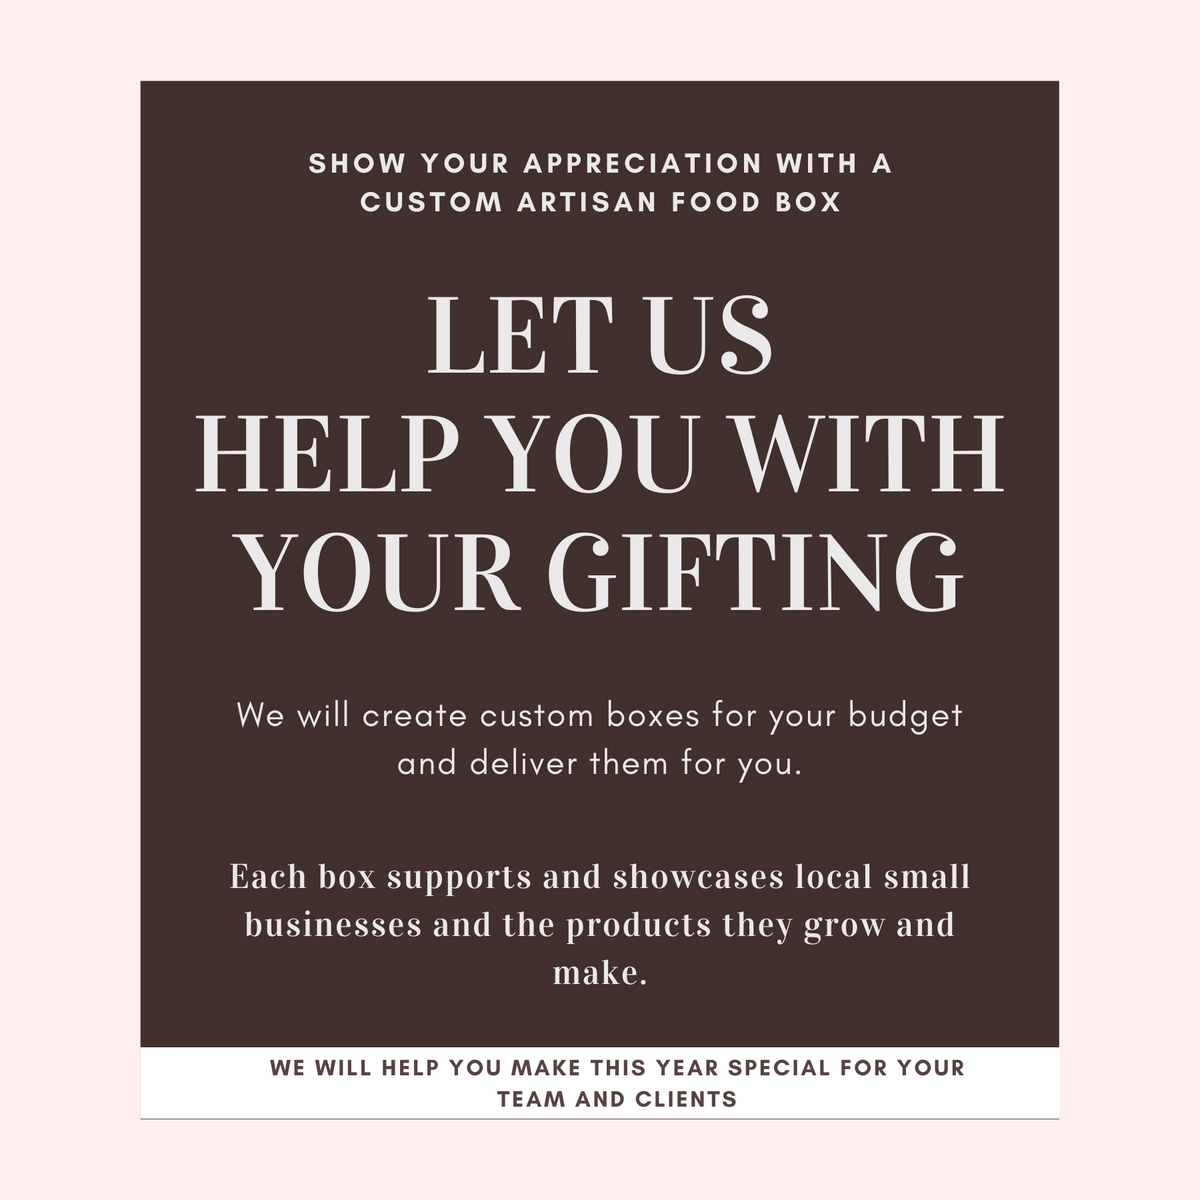 SacTown Bites Custom and Corporate Gifting Solutions